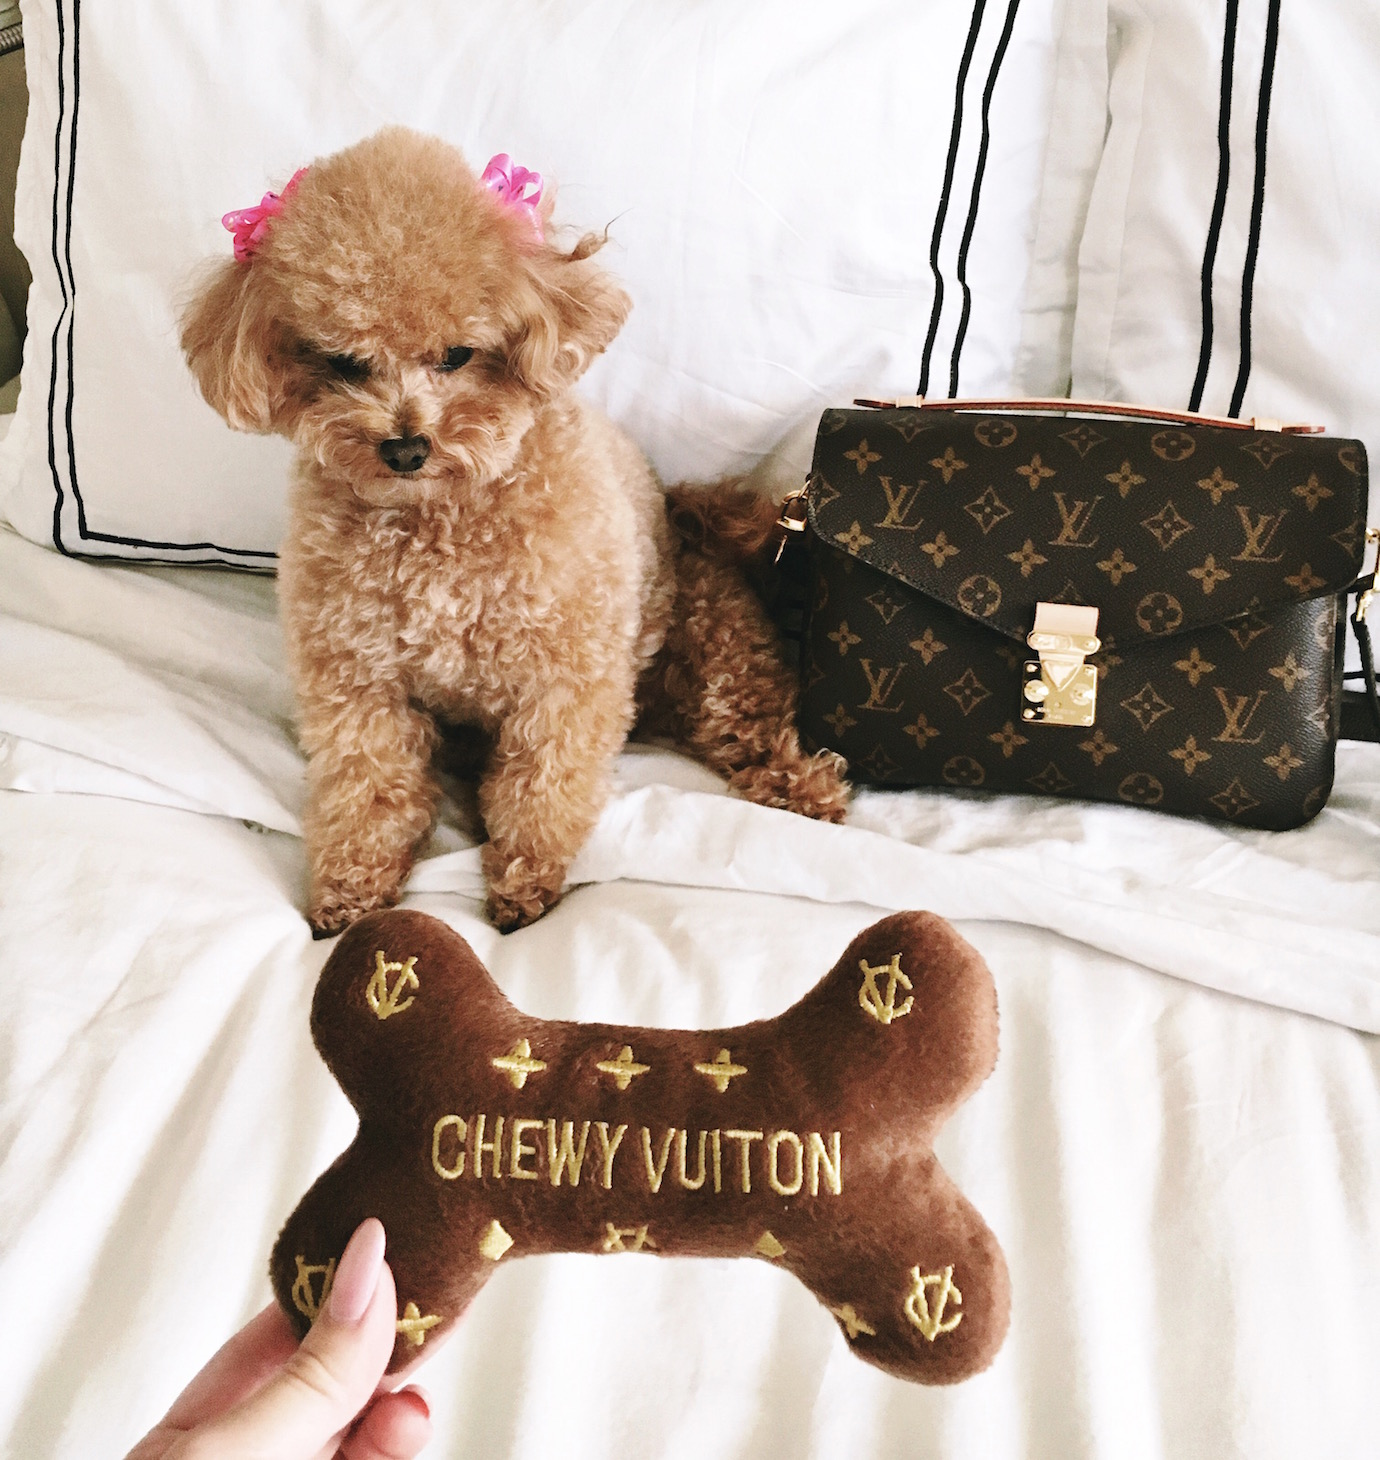 Blondie in the City | Instagram @HayleyLarue | Louis Vuitton Pochette Metis | Chewy Vuitton Dog Toy